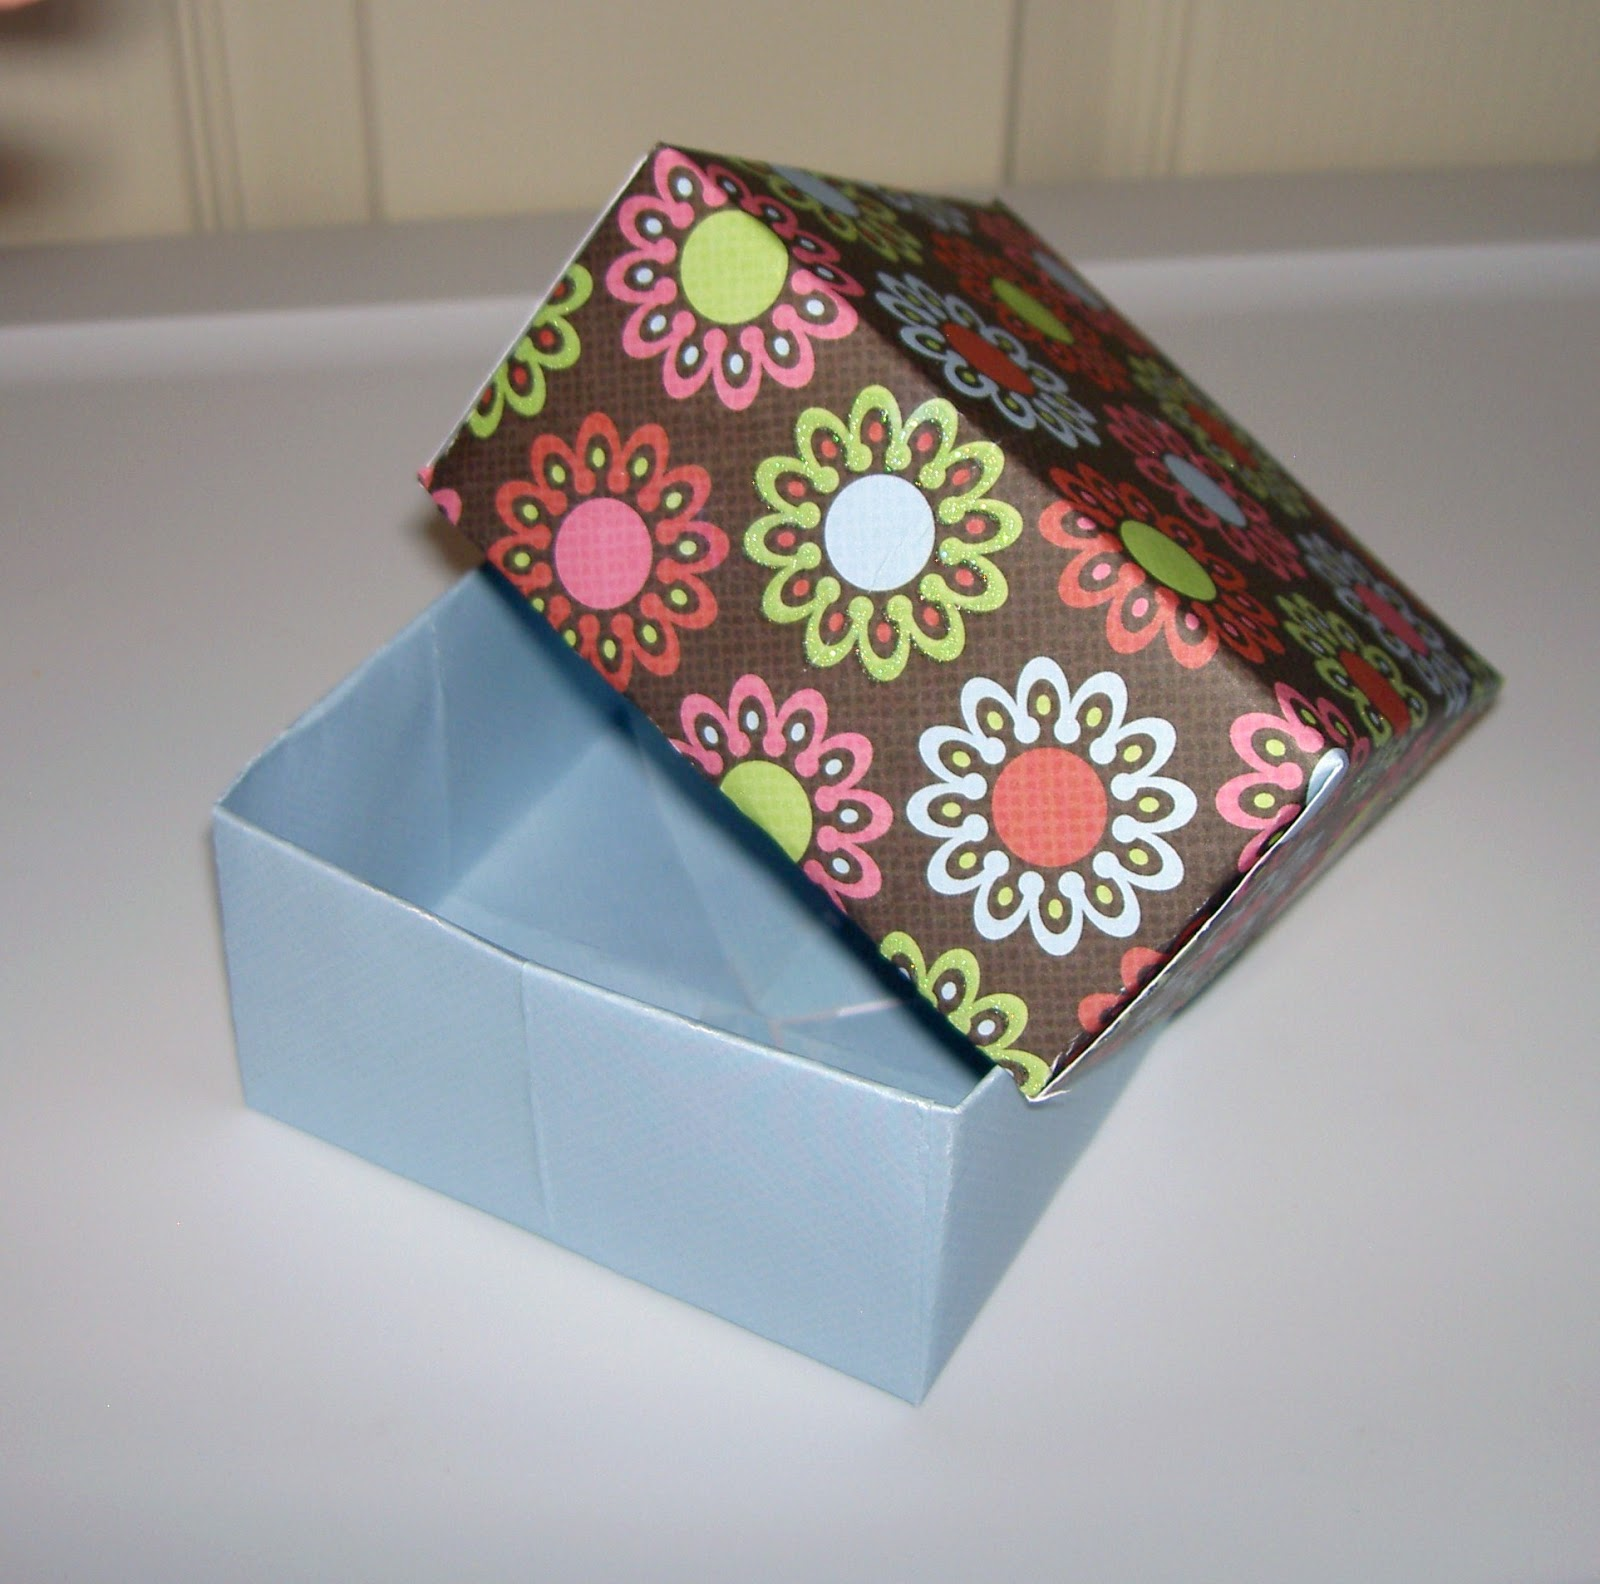 christensen crafts and such how to make a paper box. Black Bedroom Furniture Sets. Home Design Ideas